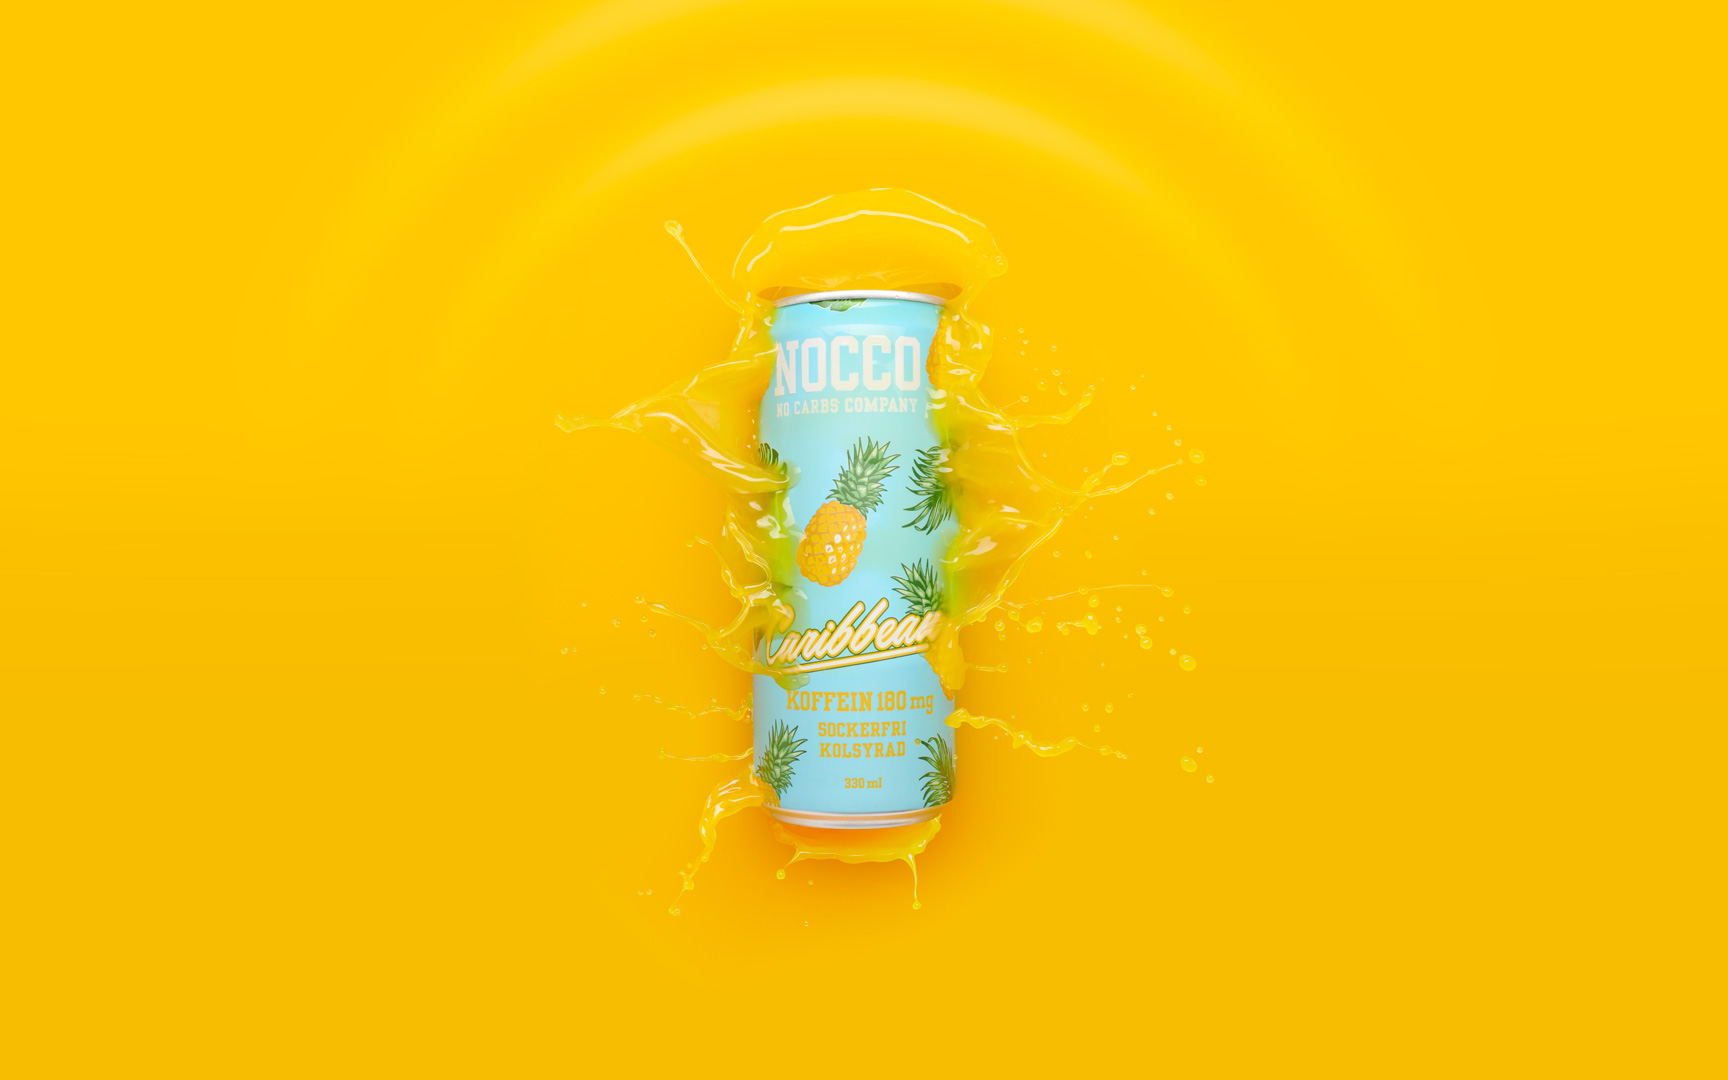 Nocco Energy drink splash - beverage, liquid and product photography